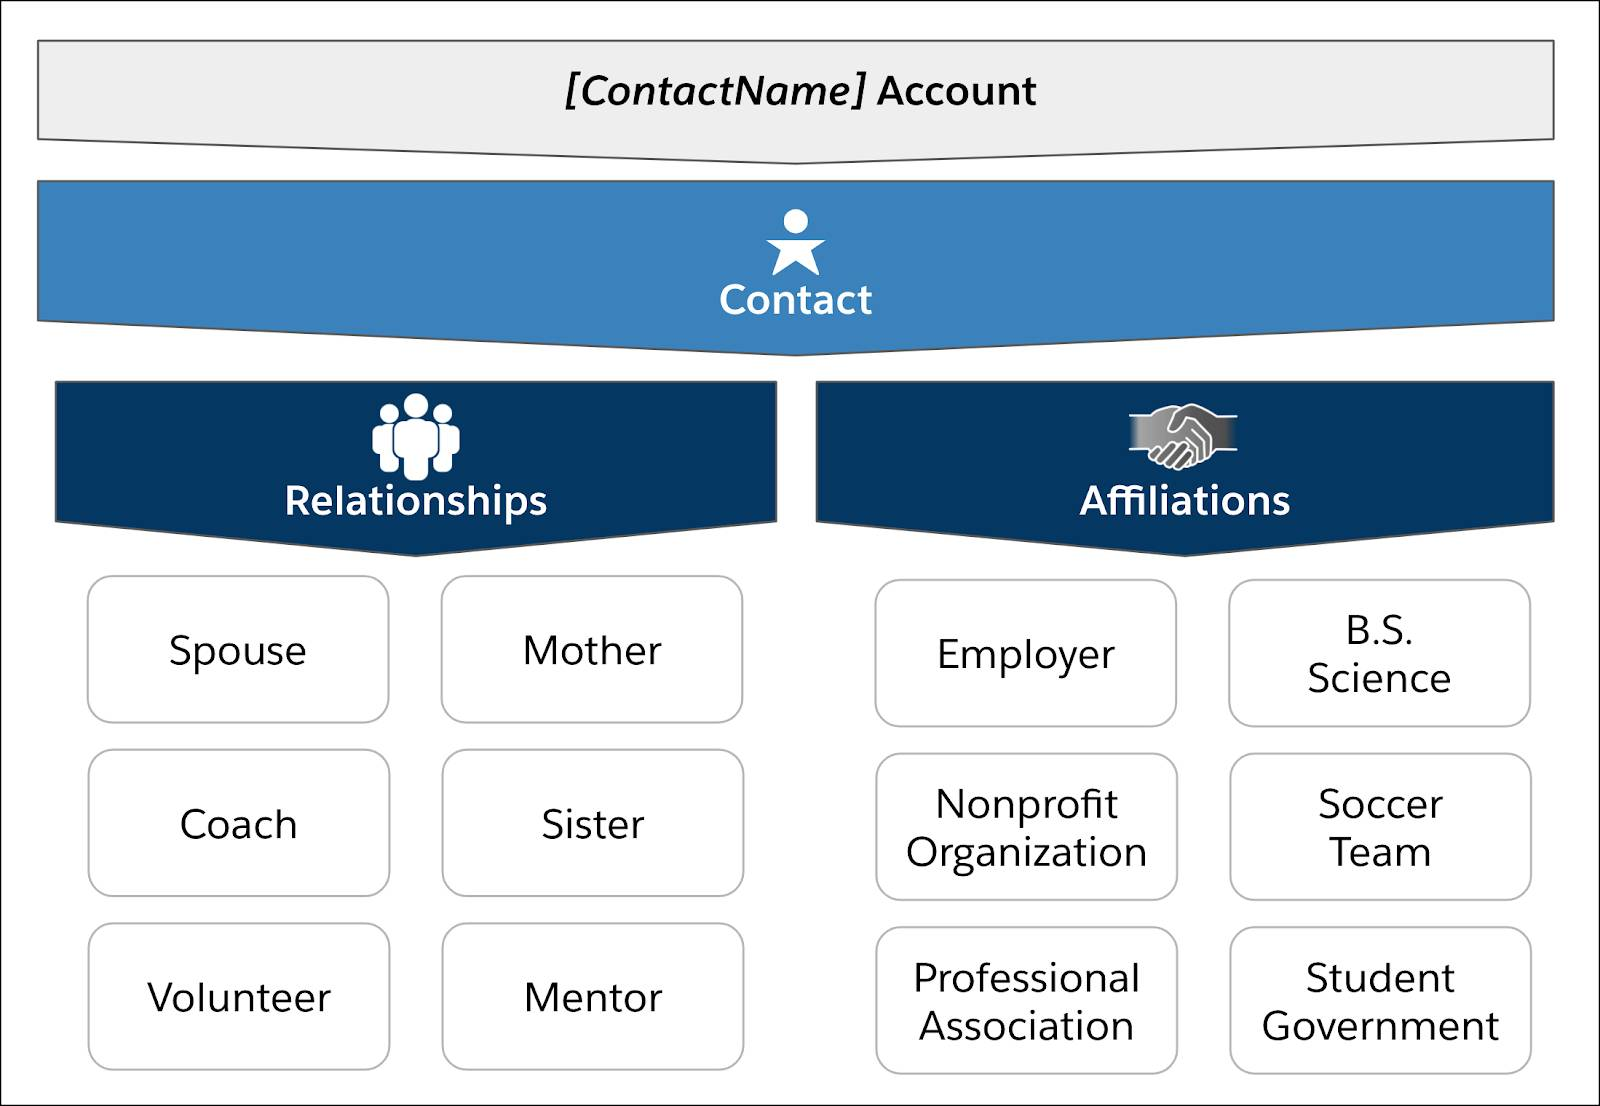 When relationships and affiliations are added to the contact record, you can see the connections your alumni have to the institution and the community.